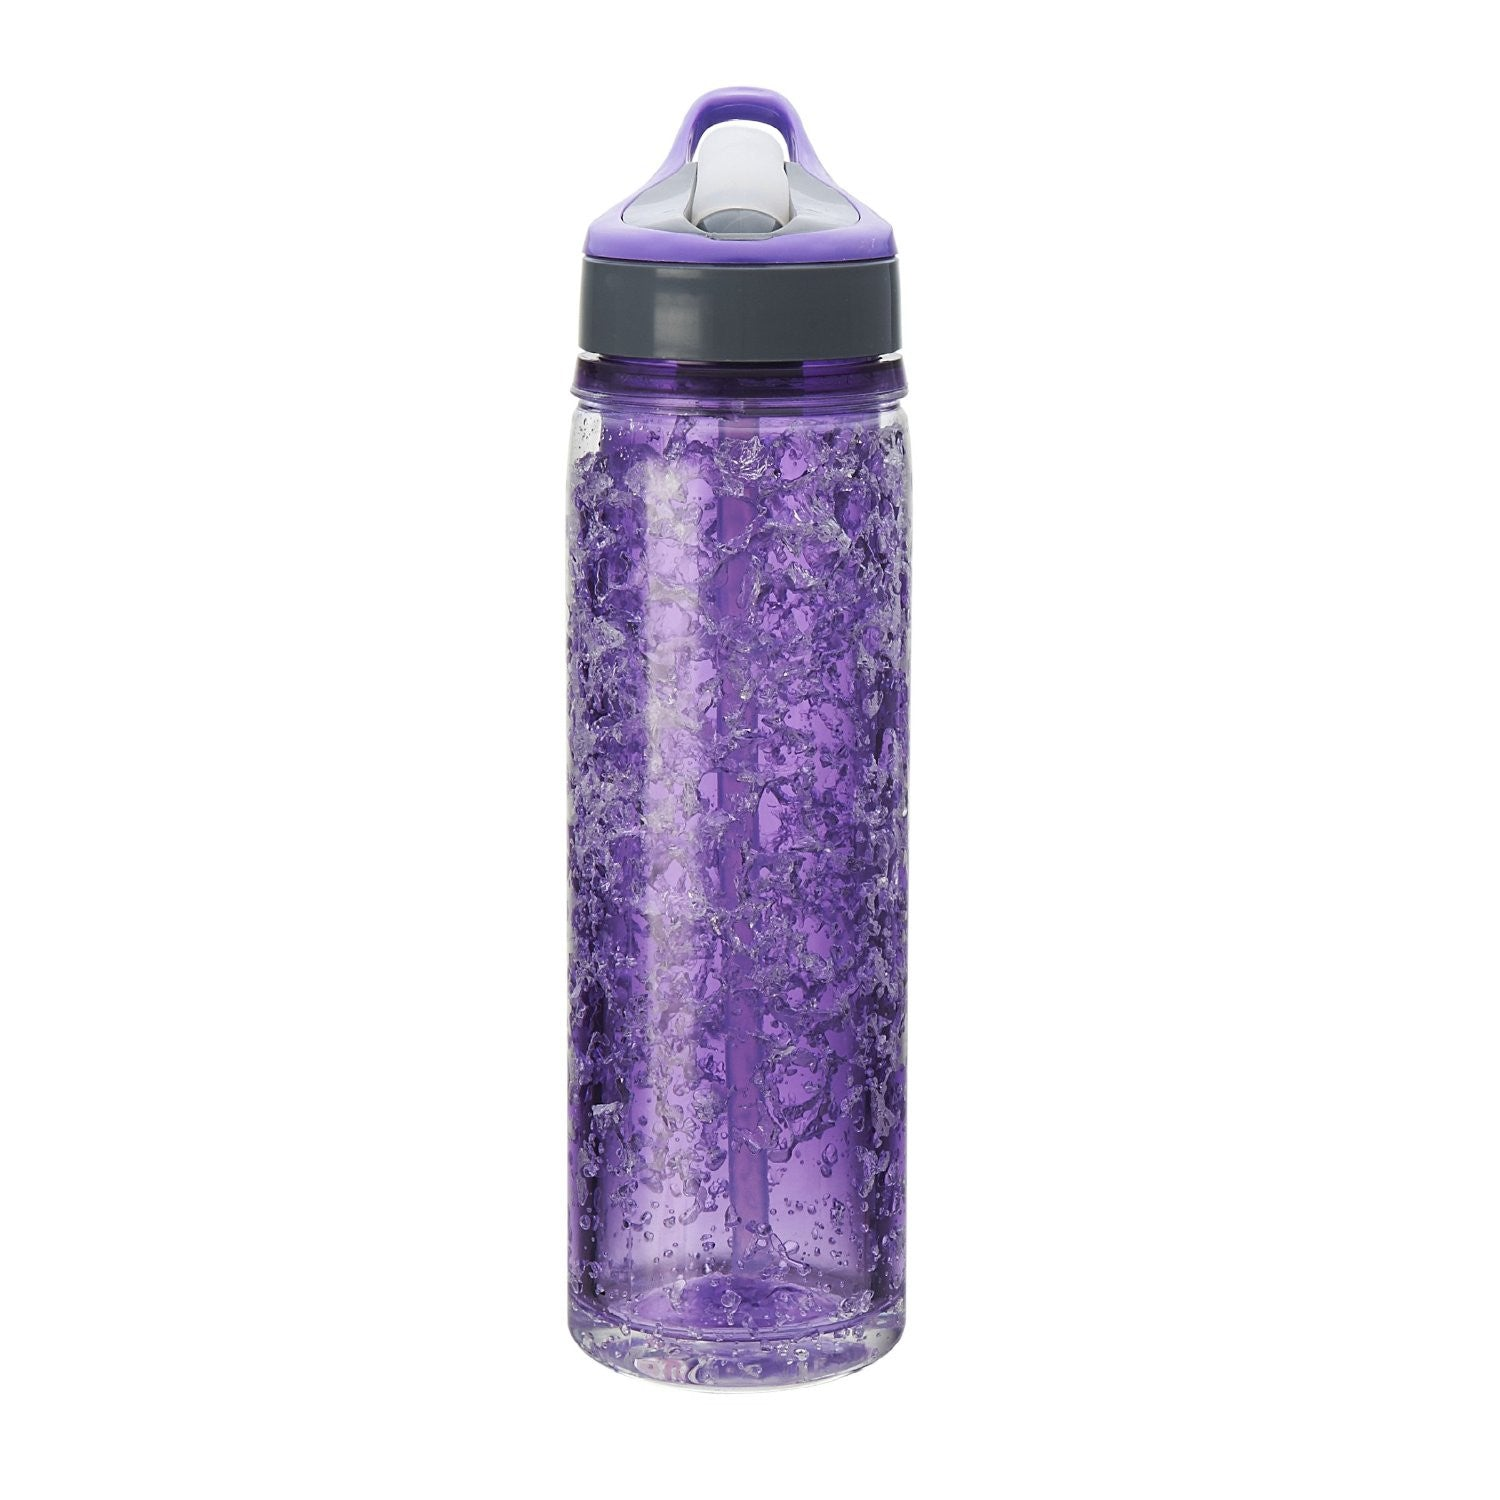 Perma-Frost Hydration Bottle